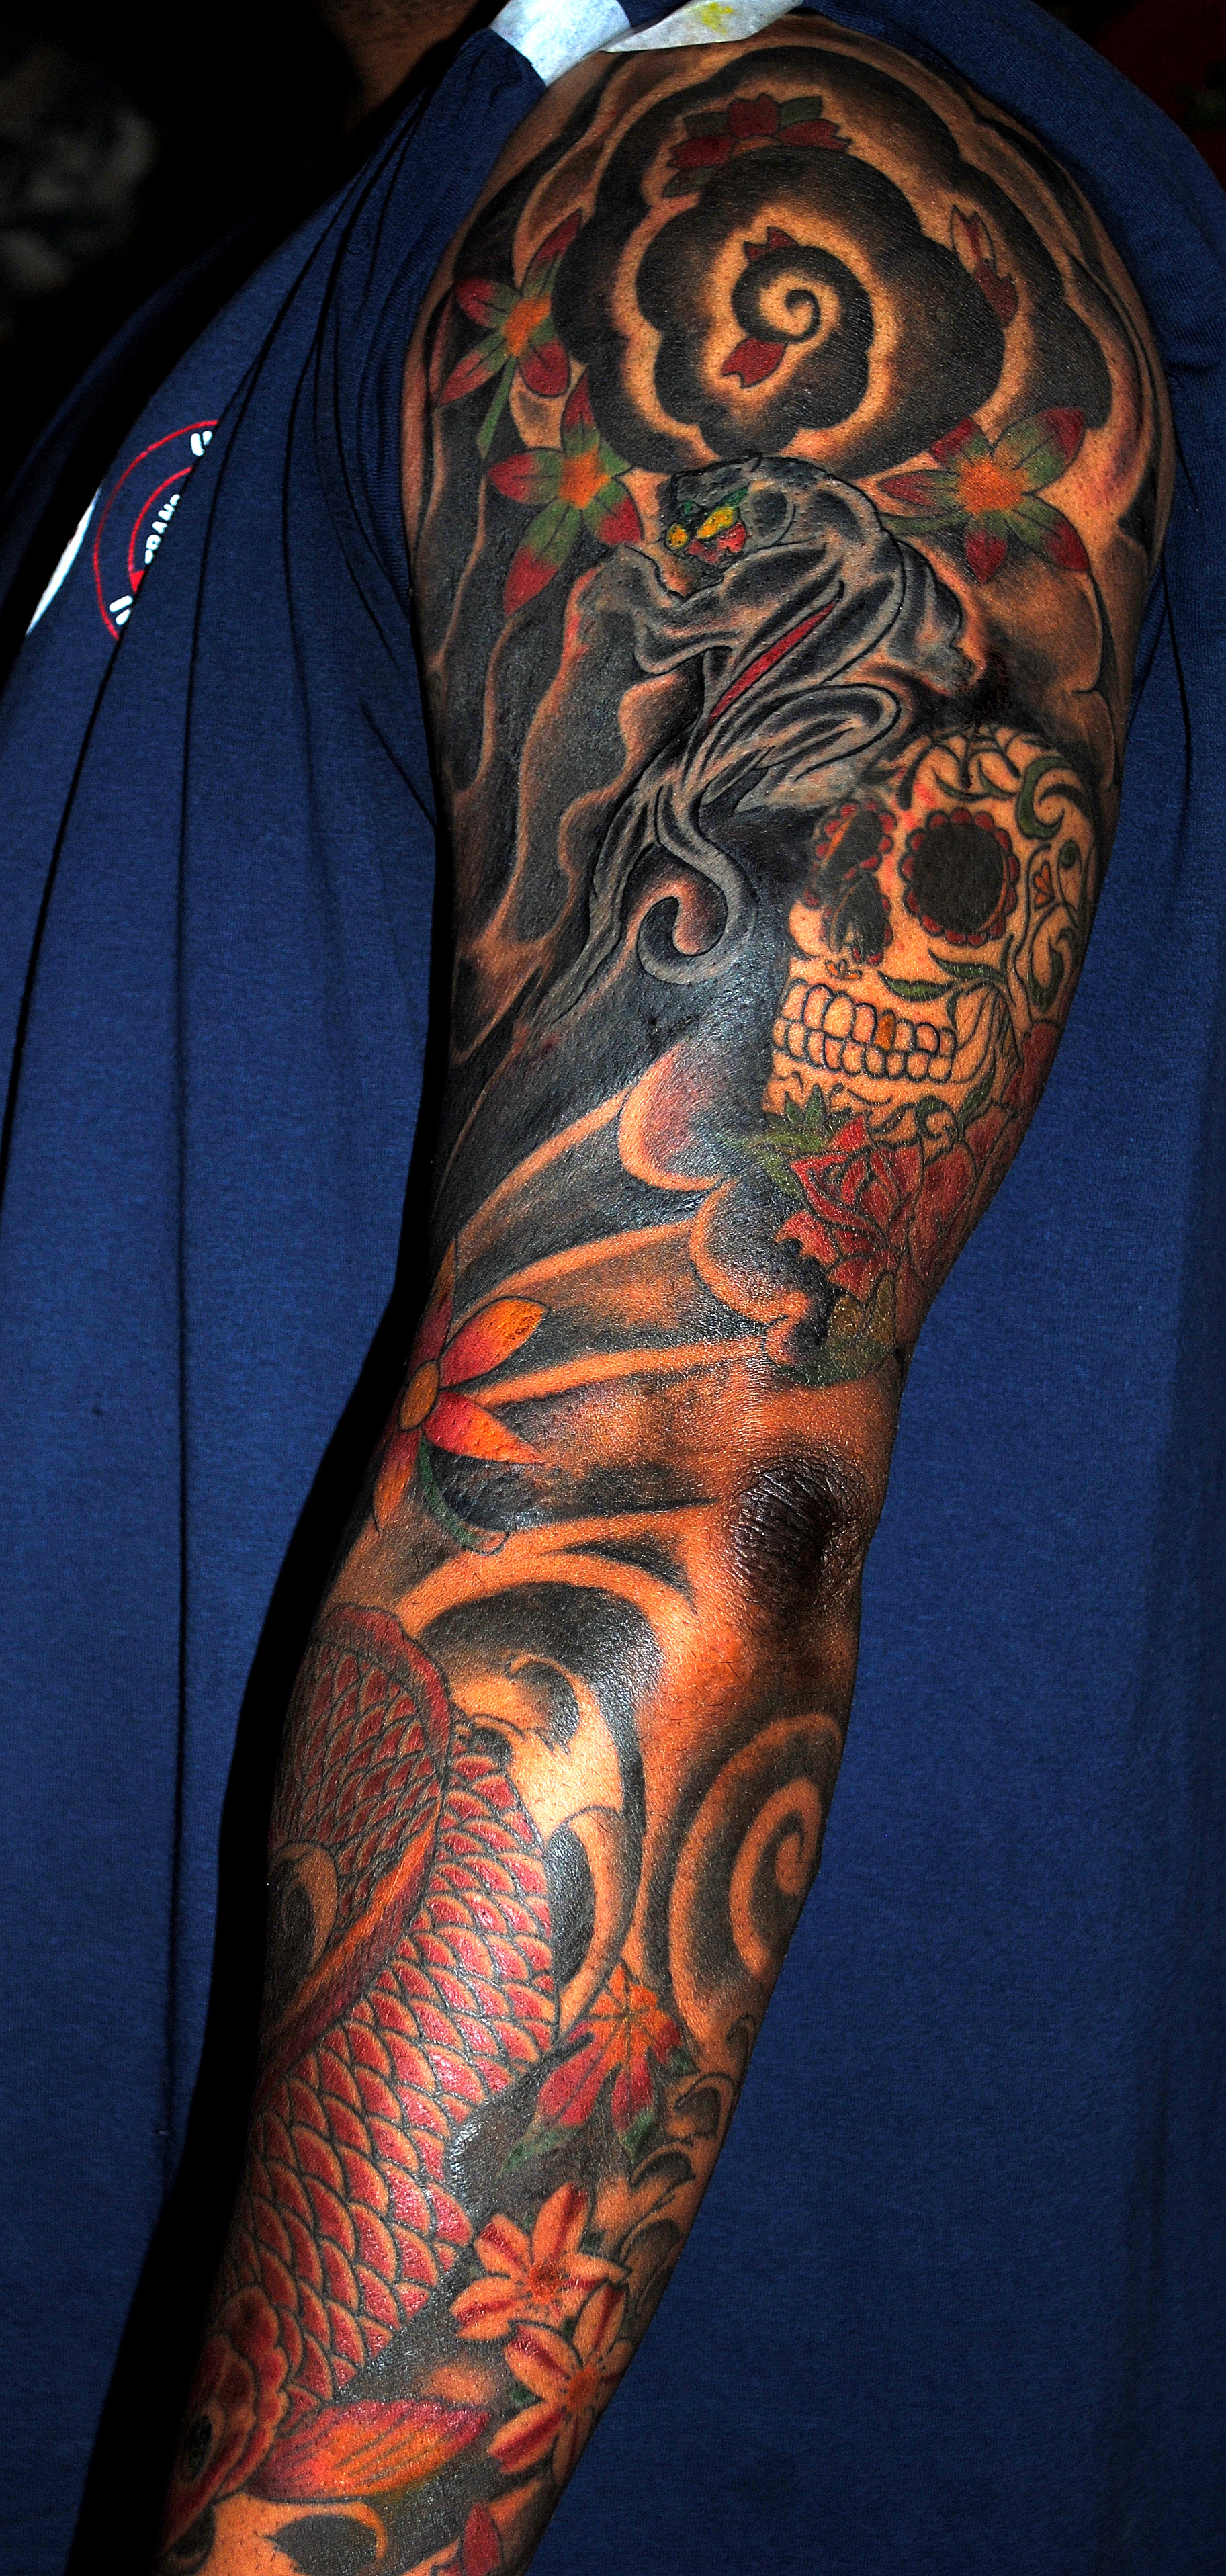 Japanese Sleeve Tattoo Cover Up Restorat